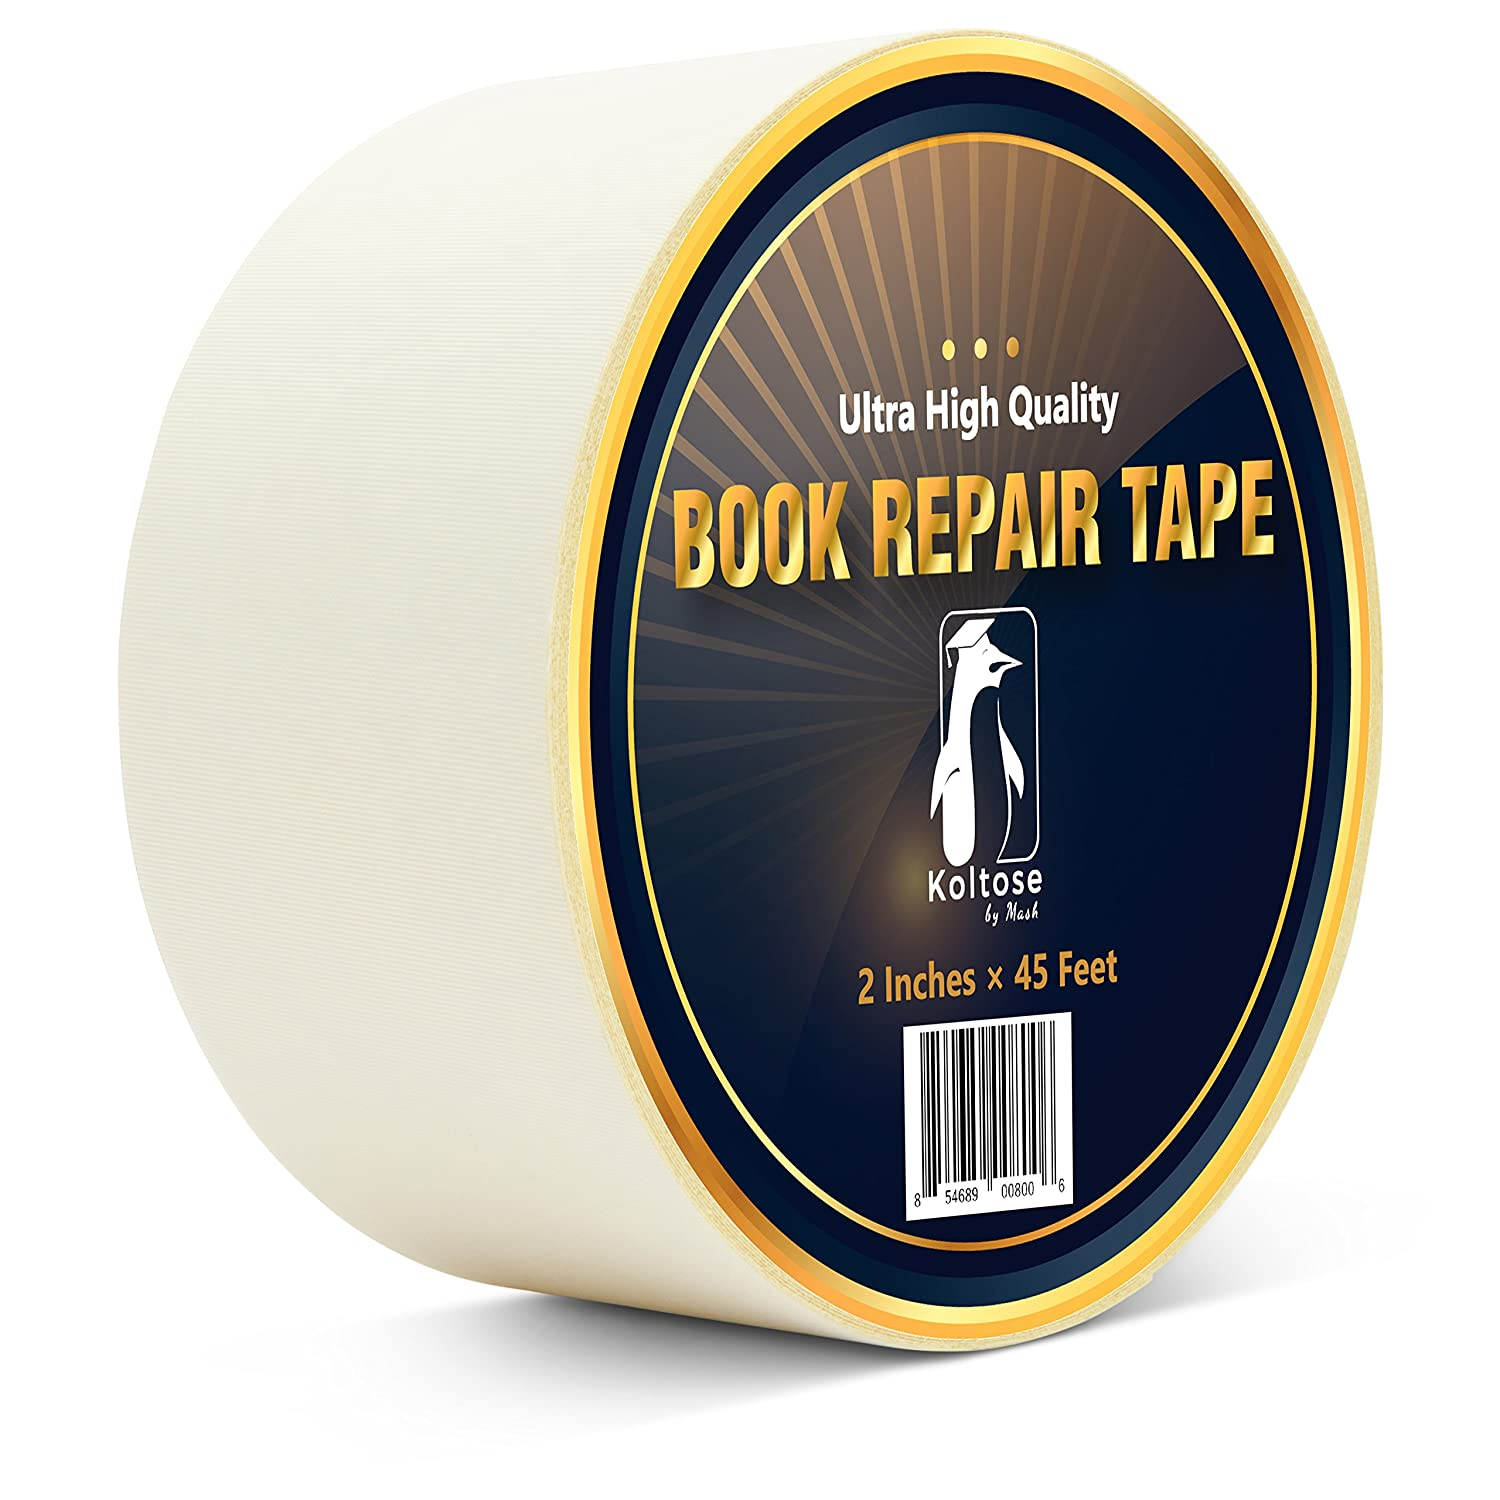 Semi-Transparent Hinging Tape Bookbinding Tape Craft Tape White Cloth Book Repair Tape for Bookbinders 2 Inches by 45 Feet